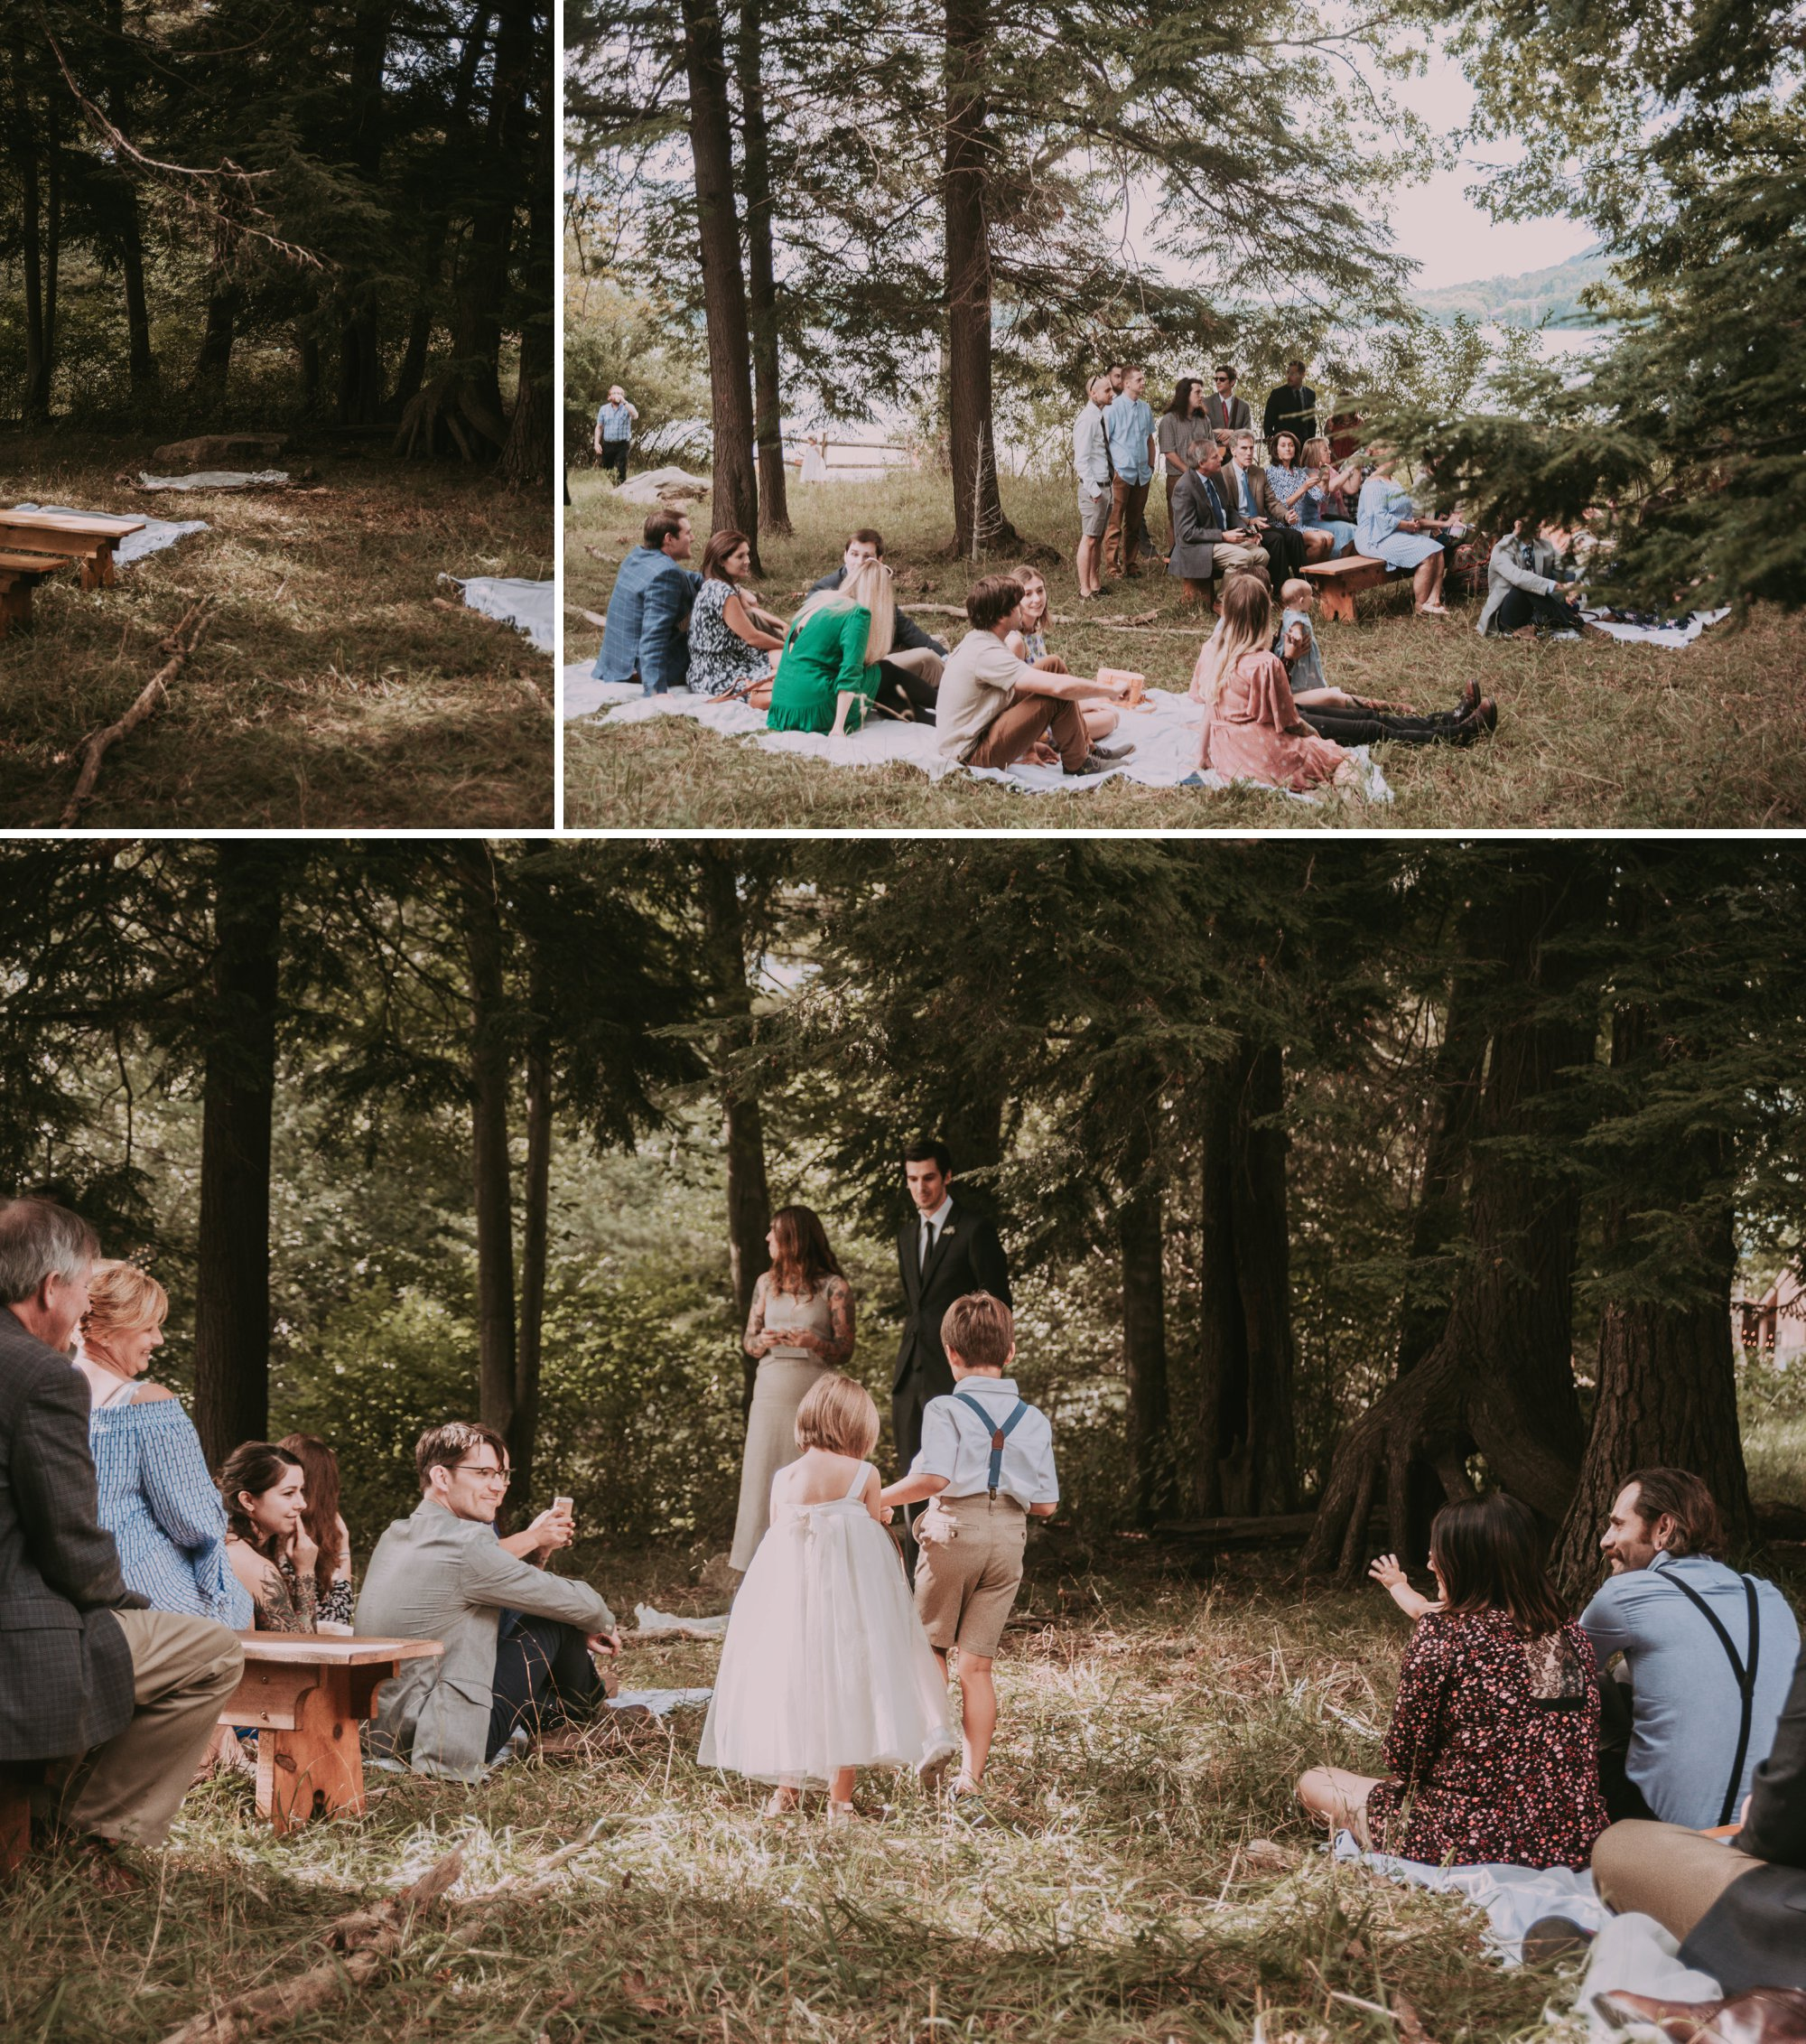 Rustic Intimate Vegan Forest Wedding with Handmade Dress. Cermony Site